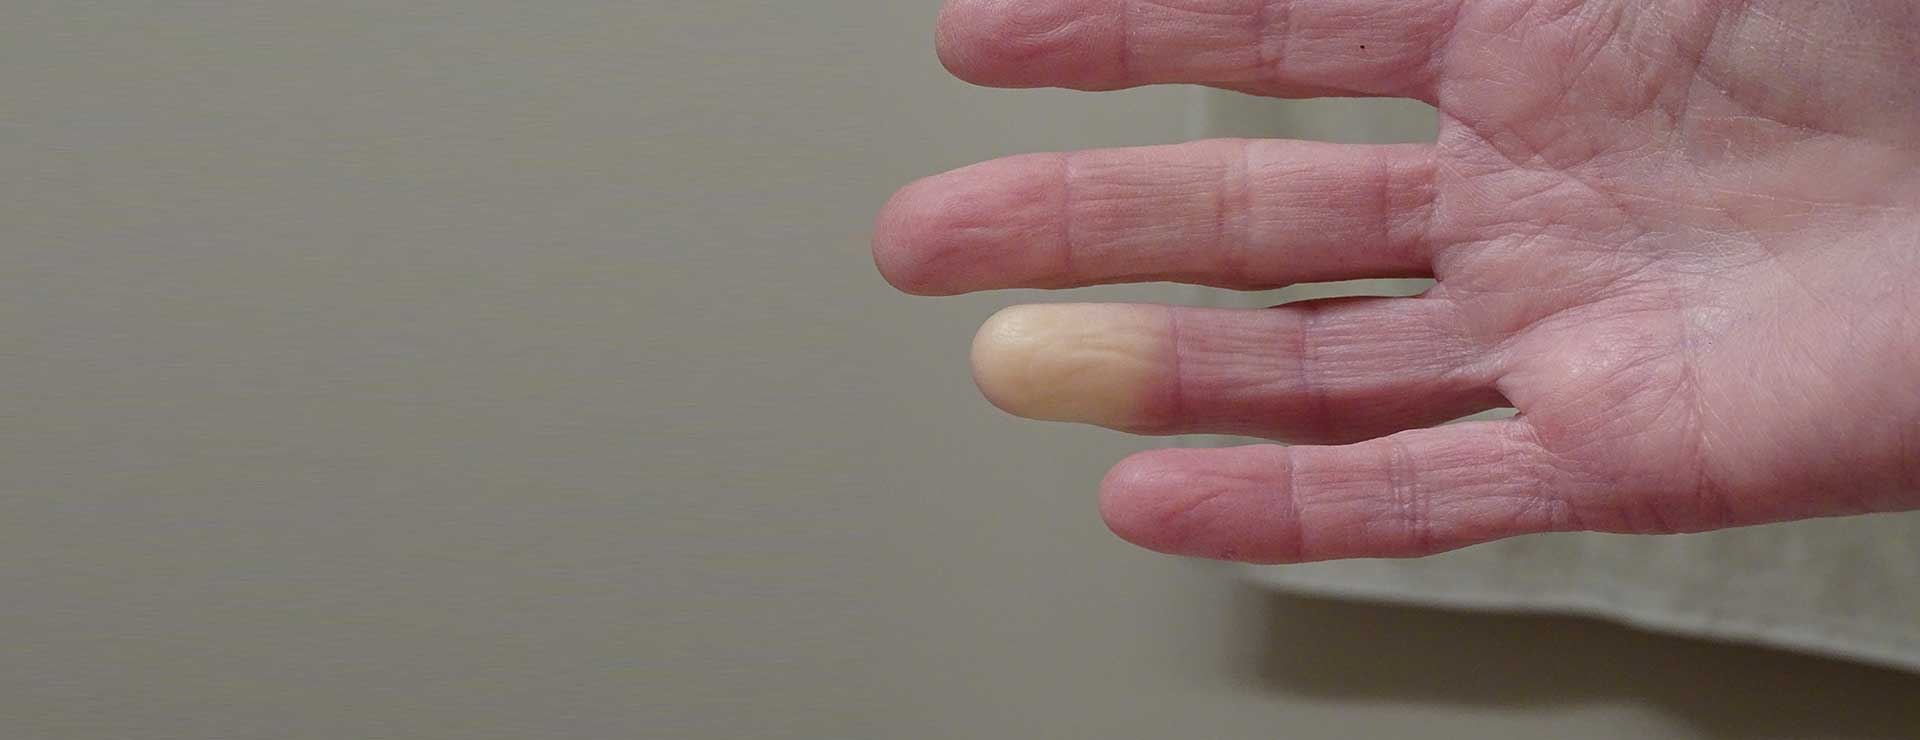 Raynaud S Phenomenon Johns Hopkins Medicine